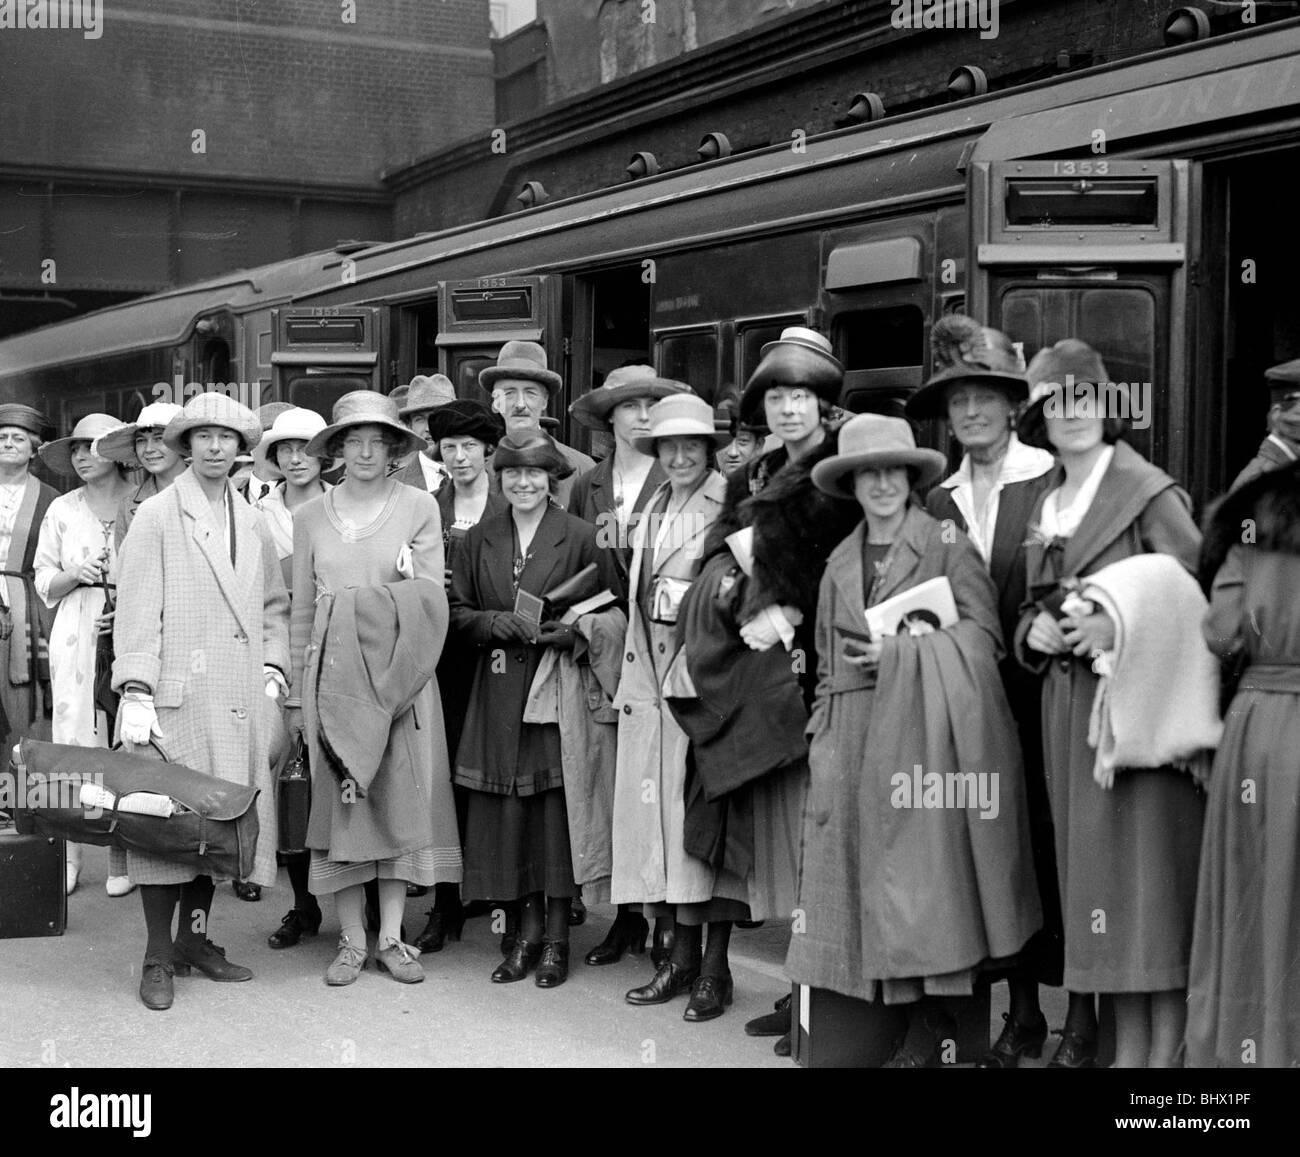 Paris 1922 British Women's Team at a Train Station in London ahead of  departure for the first ever International Track Meet for